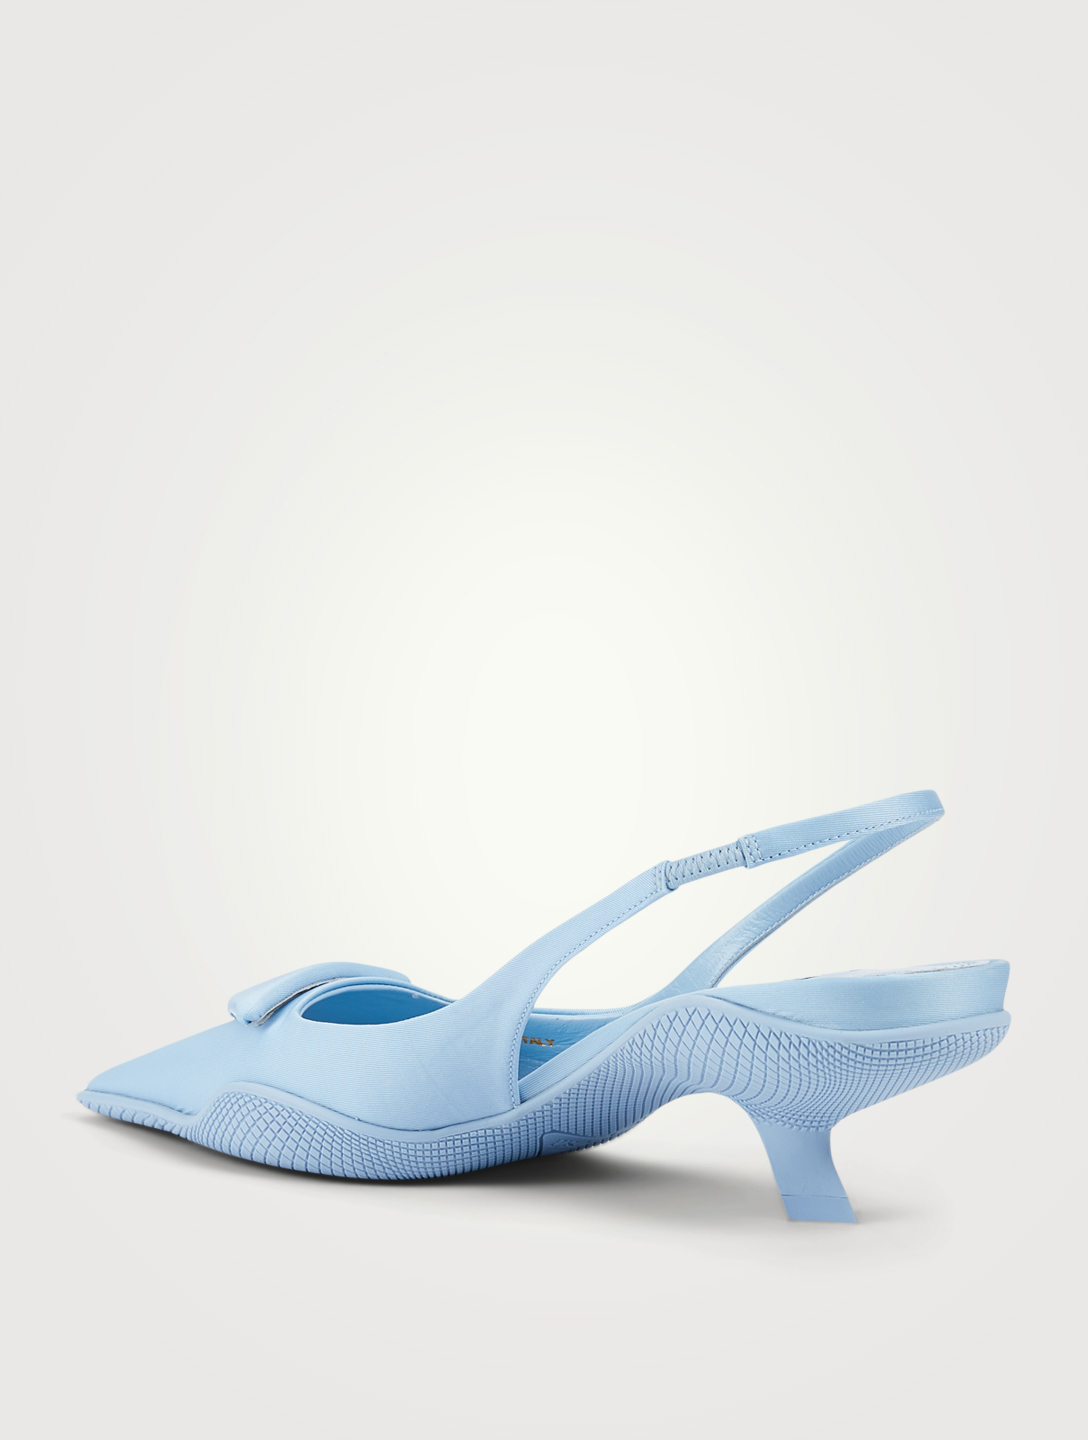 PRADA Nylon Slingback Pumps With Triangle Logo Women's Blue